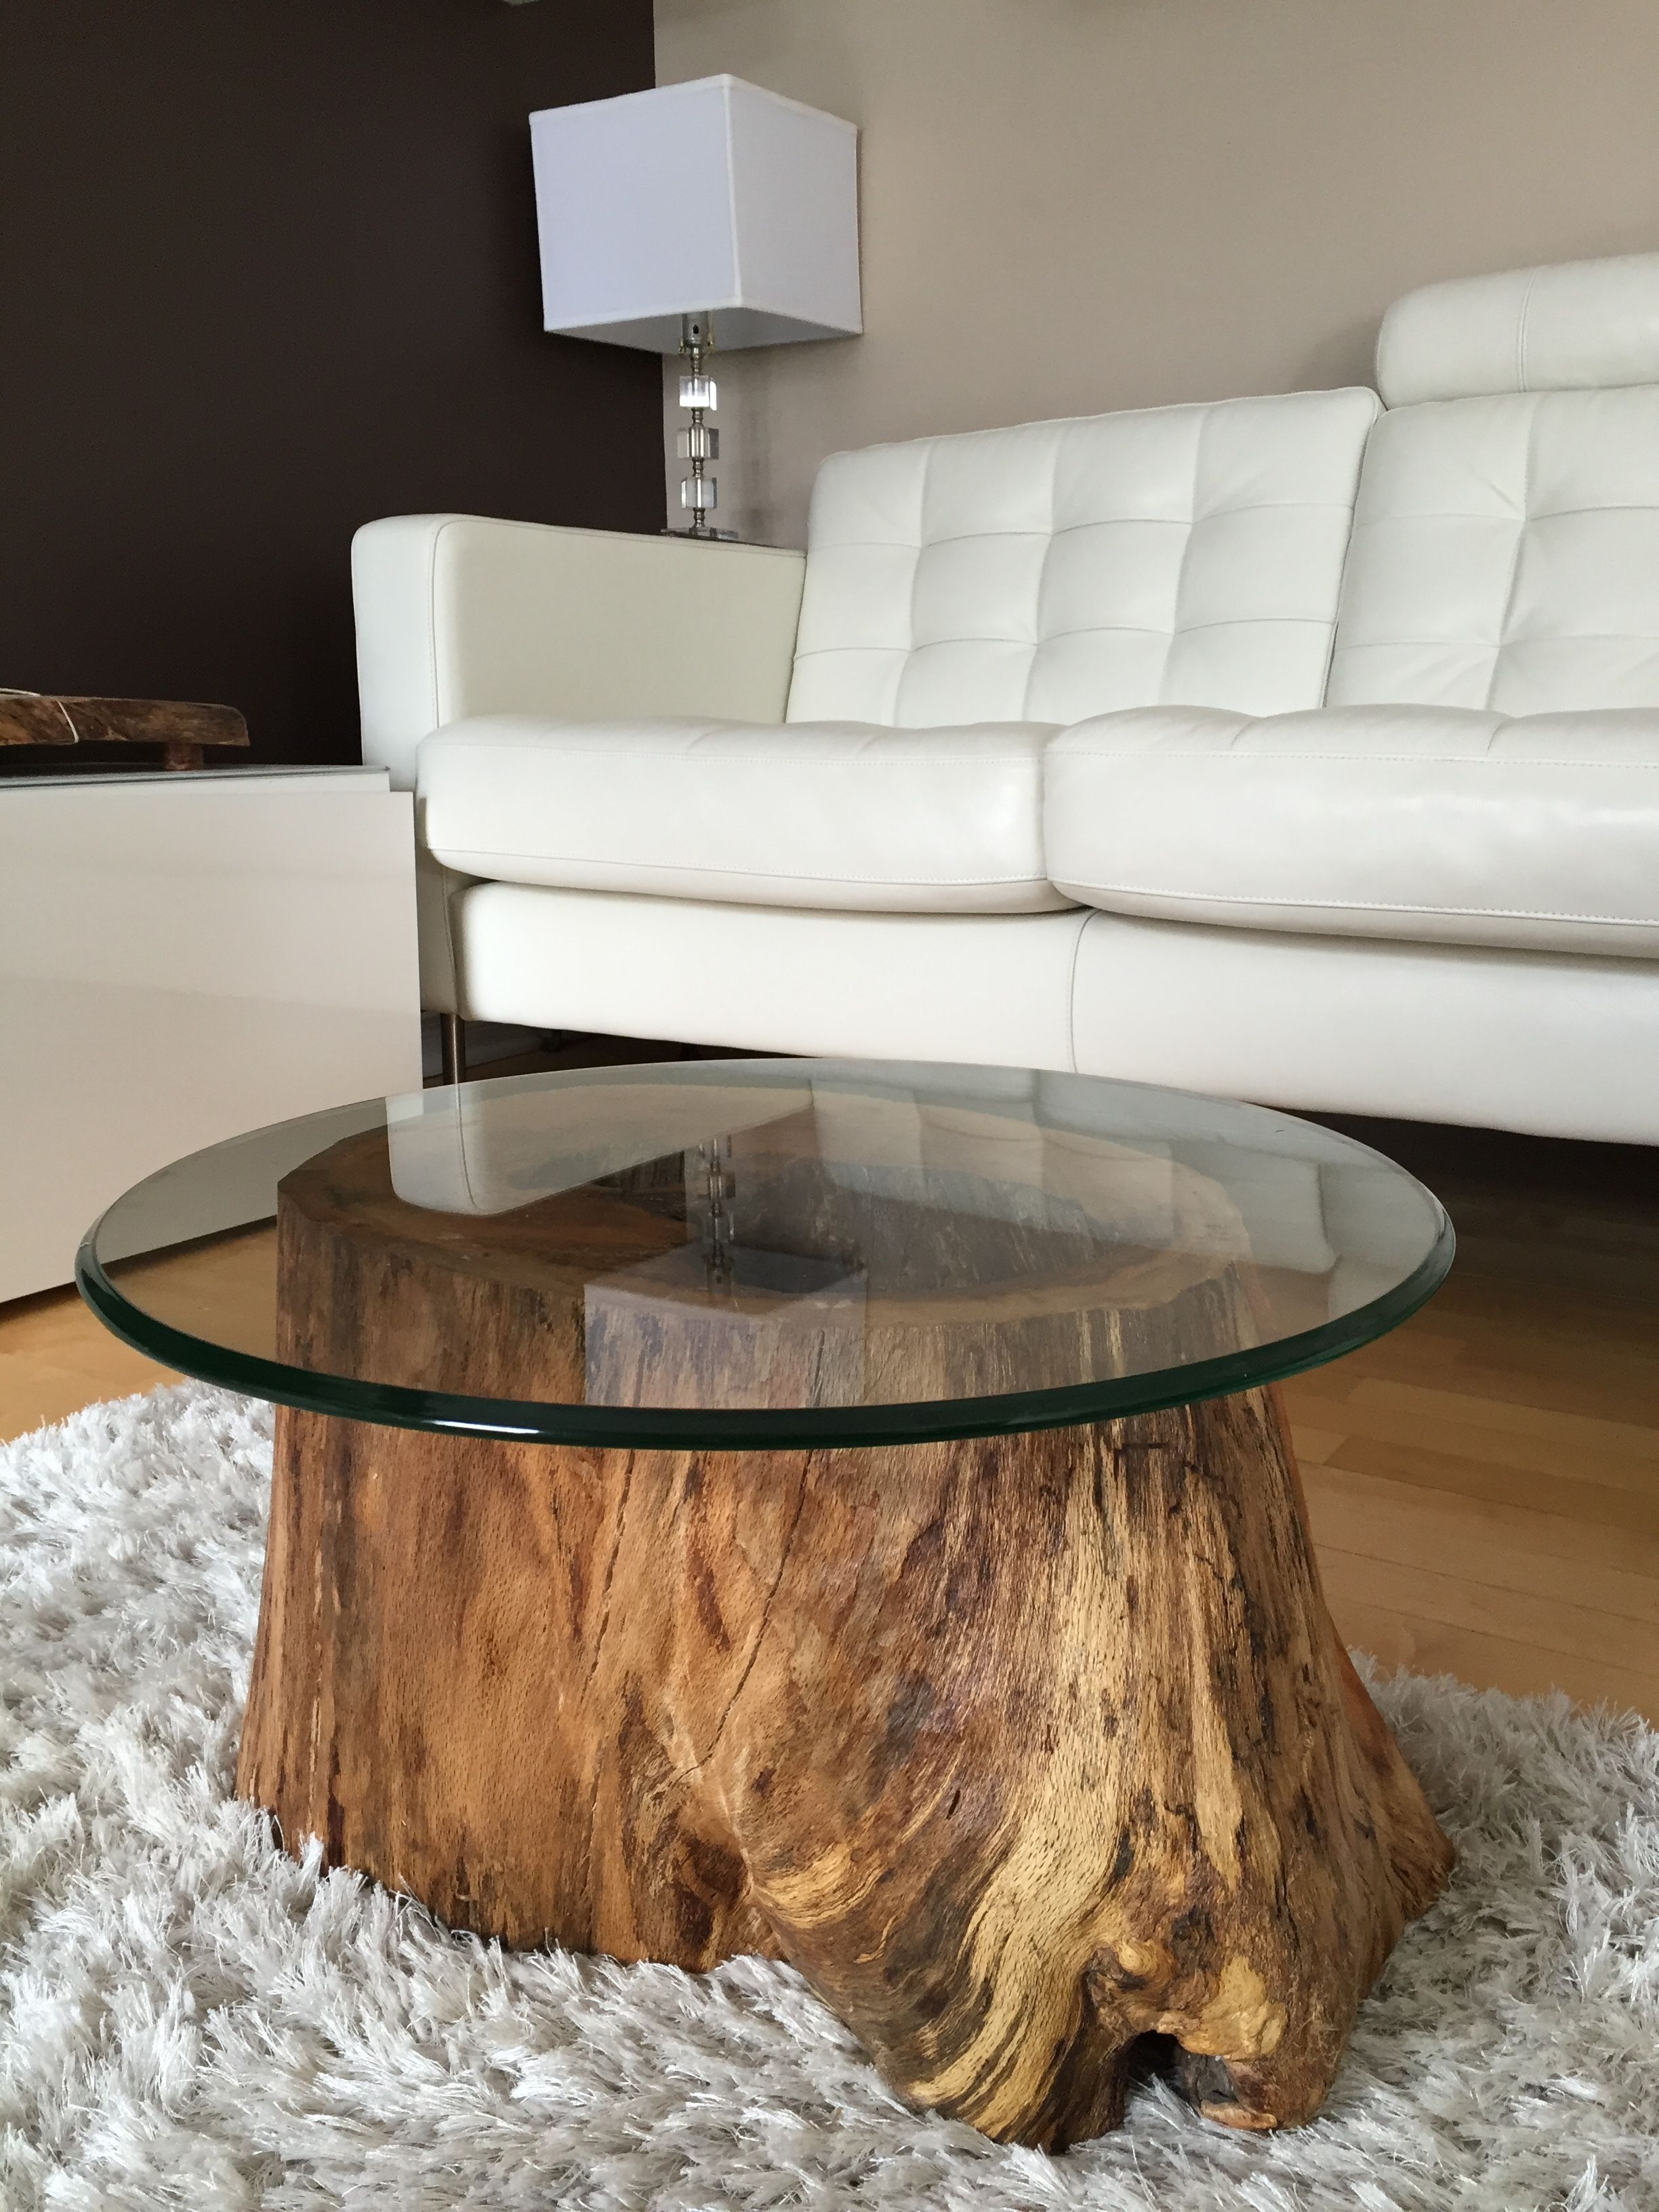 8 Glass For Coffee Table Top Replacement Uk Pics In 2020 Coffee